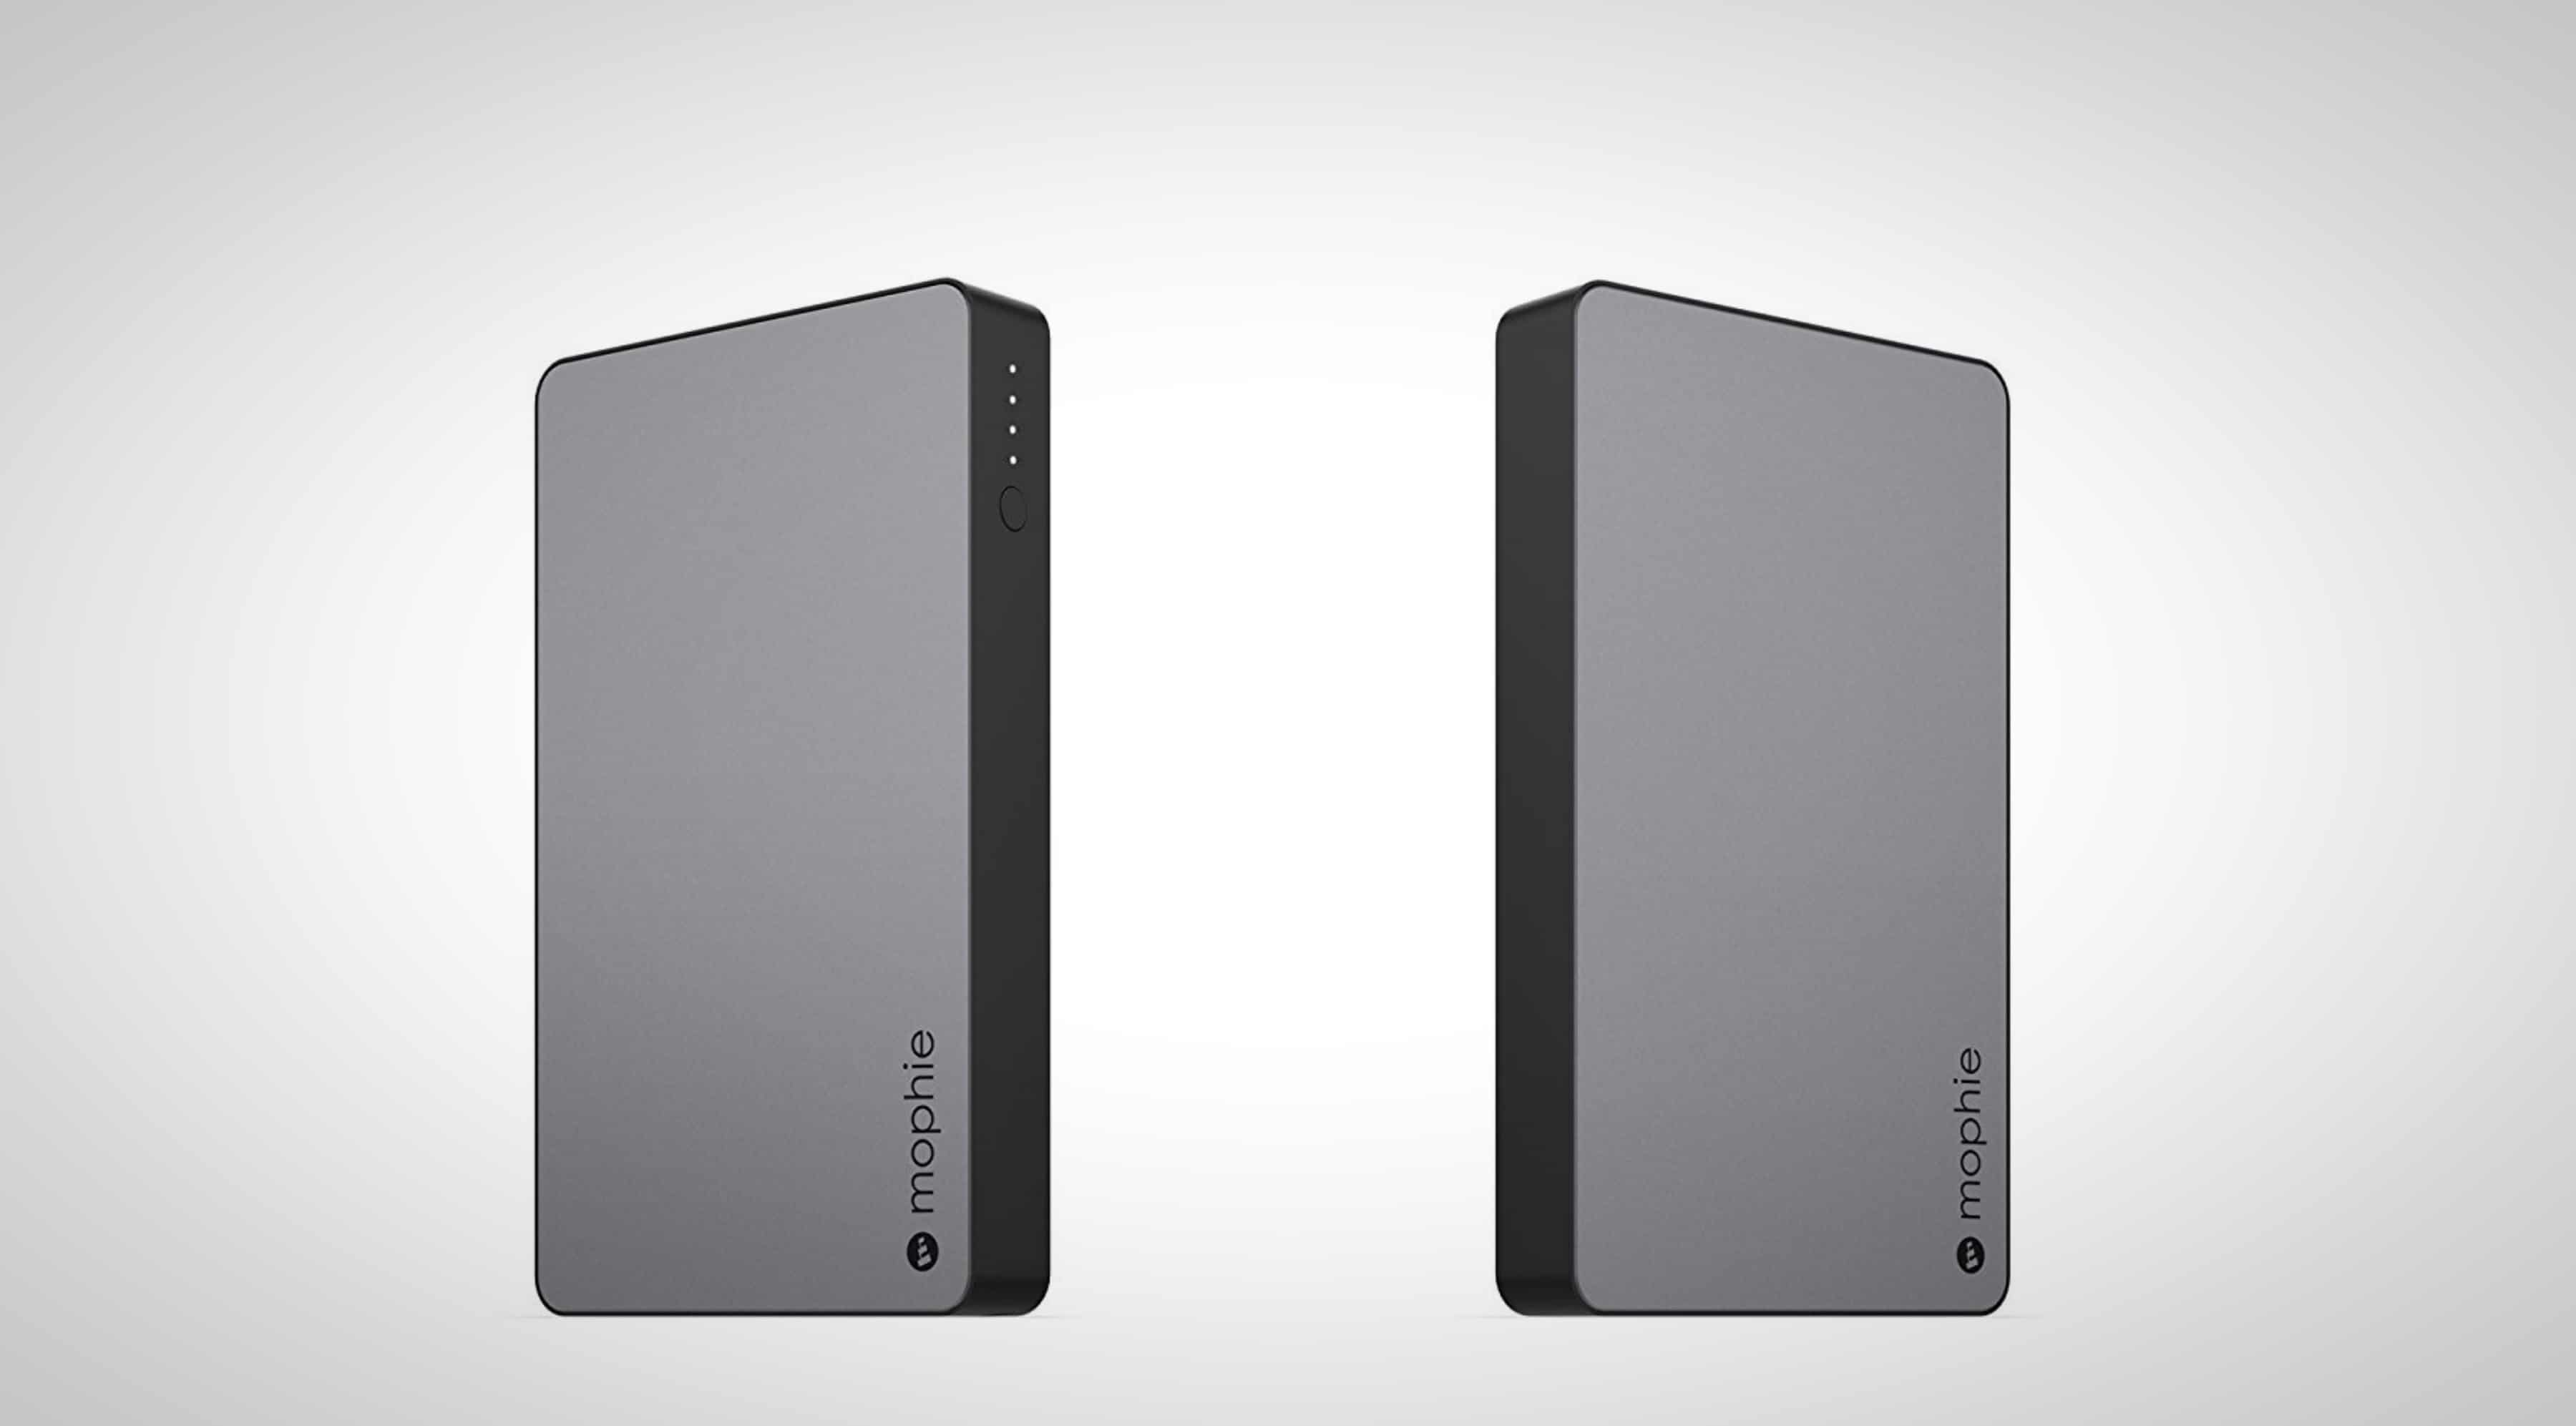 Mophie Powerstation 6,000 mAh External Battery